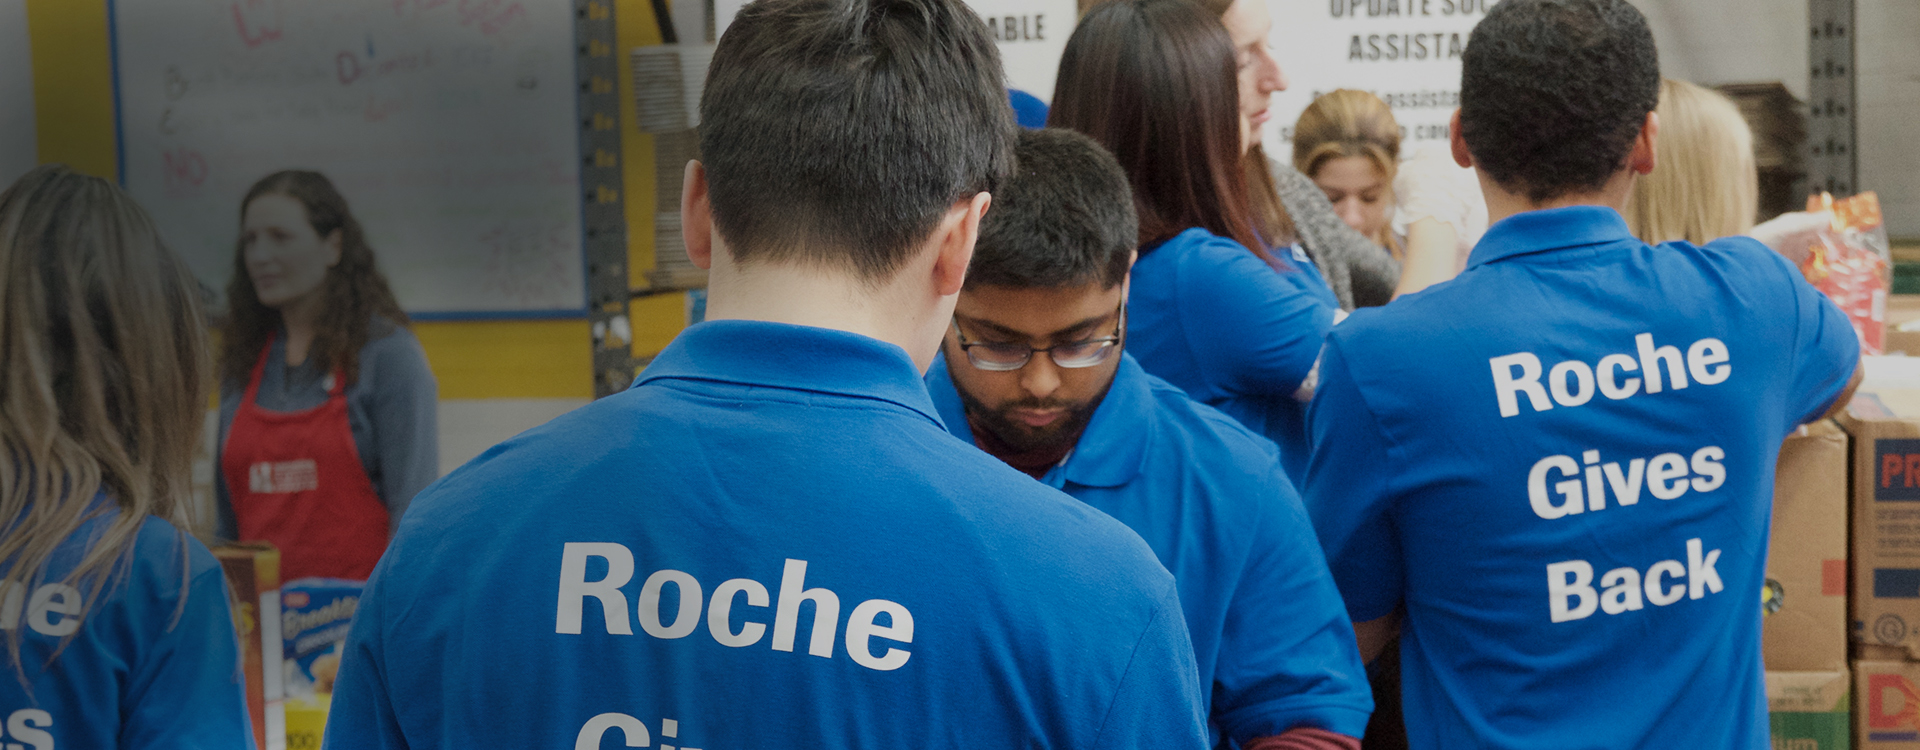 Group of employees working at a food bank wearing Roche Gives Back shirts